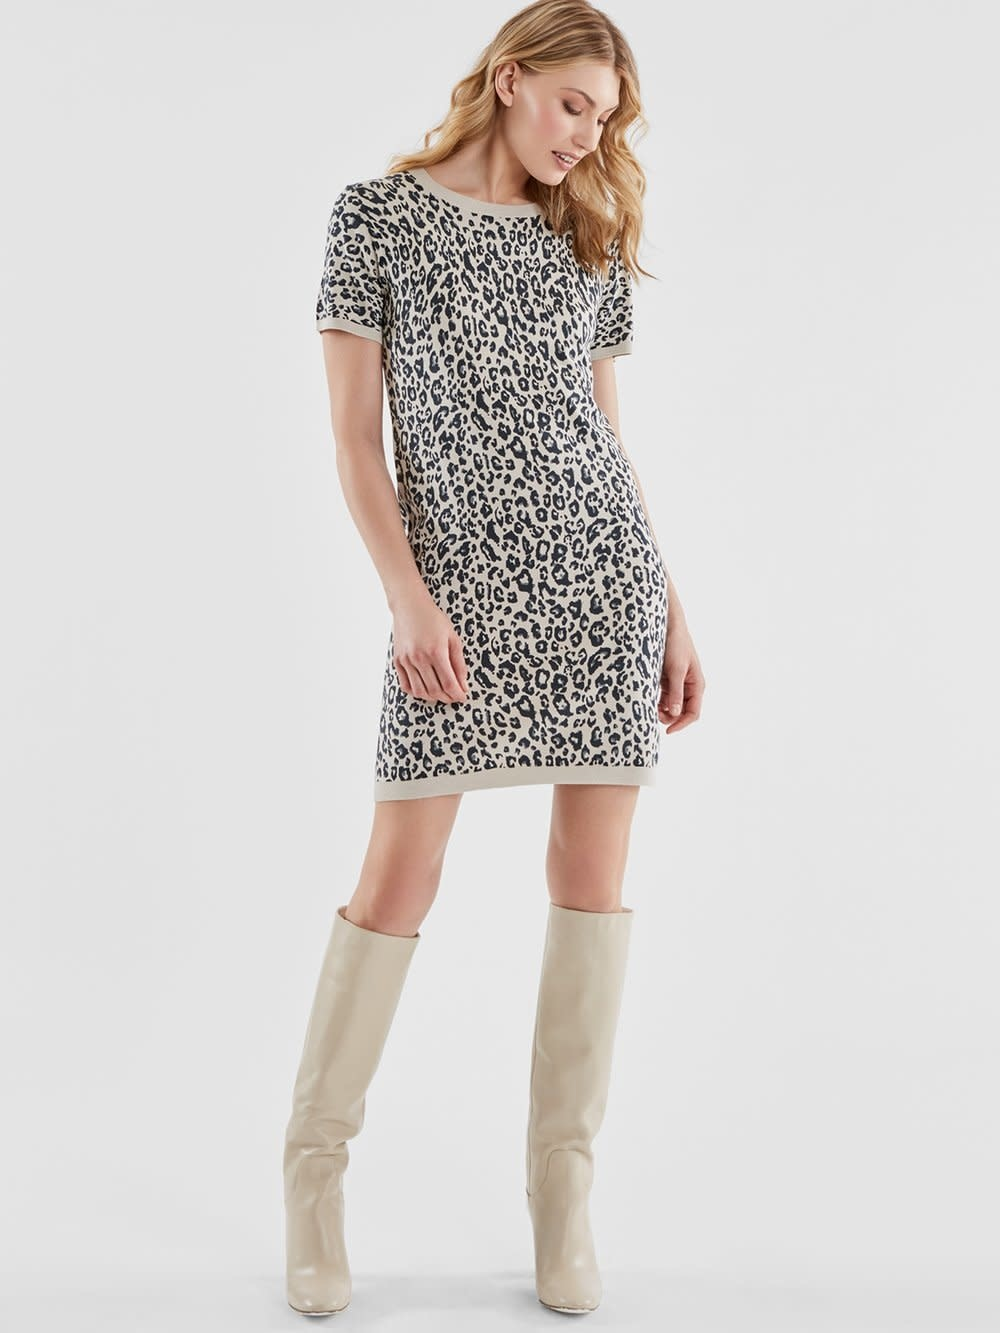 525 America Leopard Knit Dress